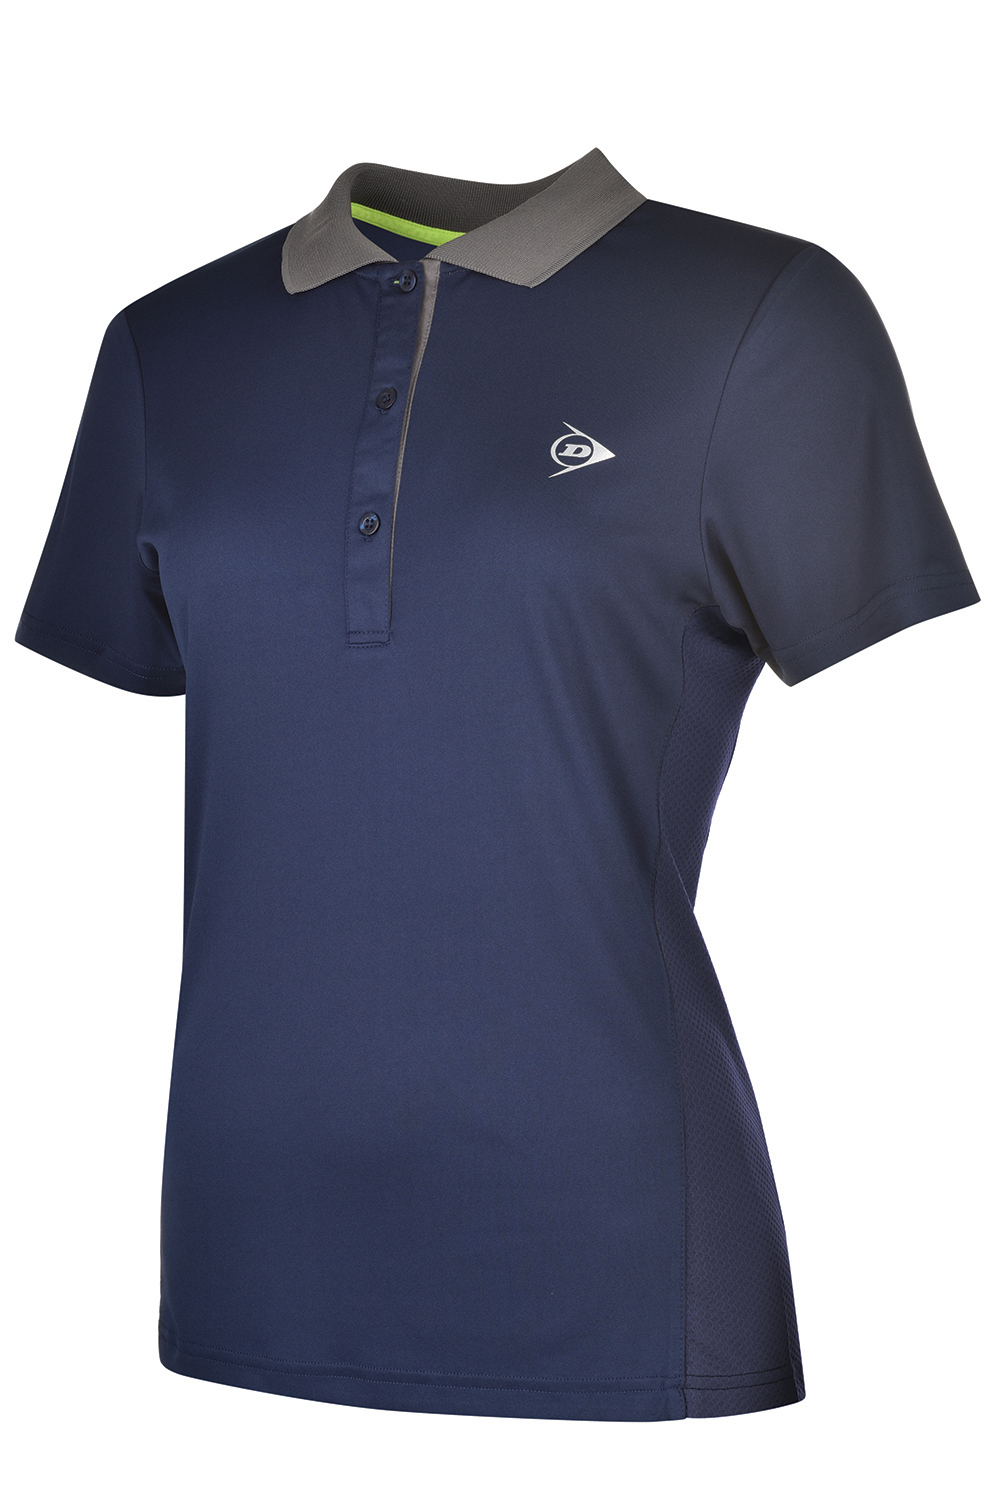 Image of   Dunlop AC Club Polo Dames - Marineblauw / antraciet